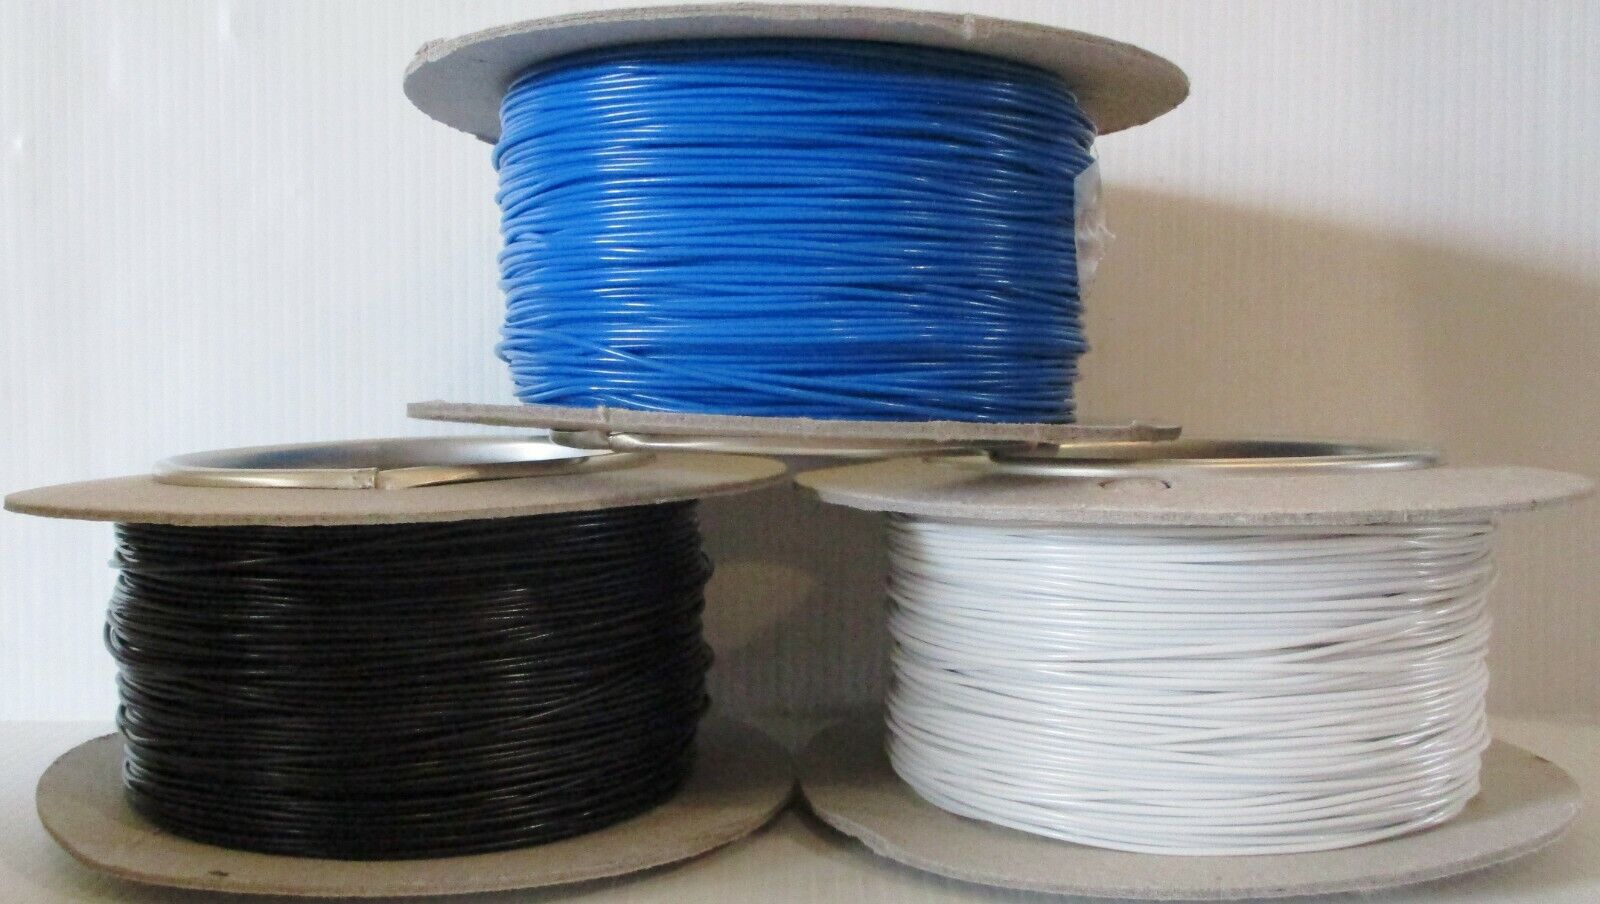 MODEL RAILWAY WIRING KIT 8 COLOURED CABLES 3M EACH 7//0.2mm